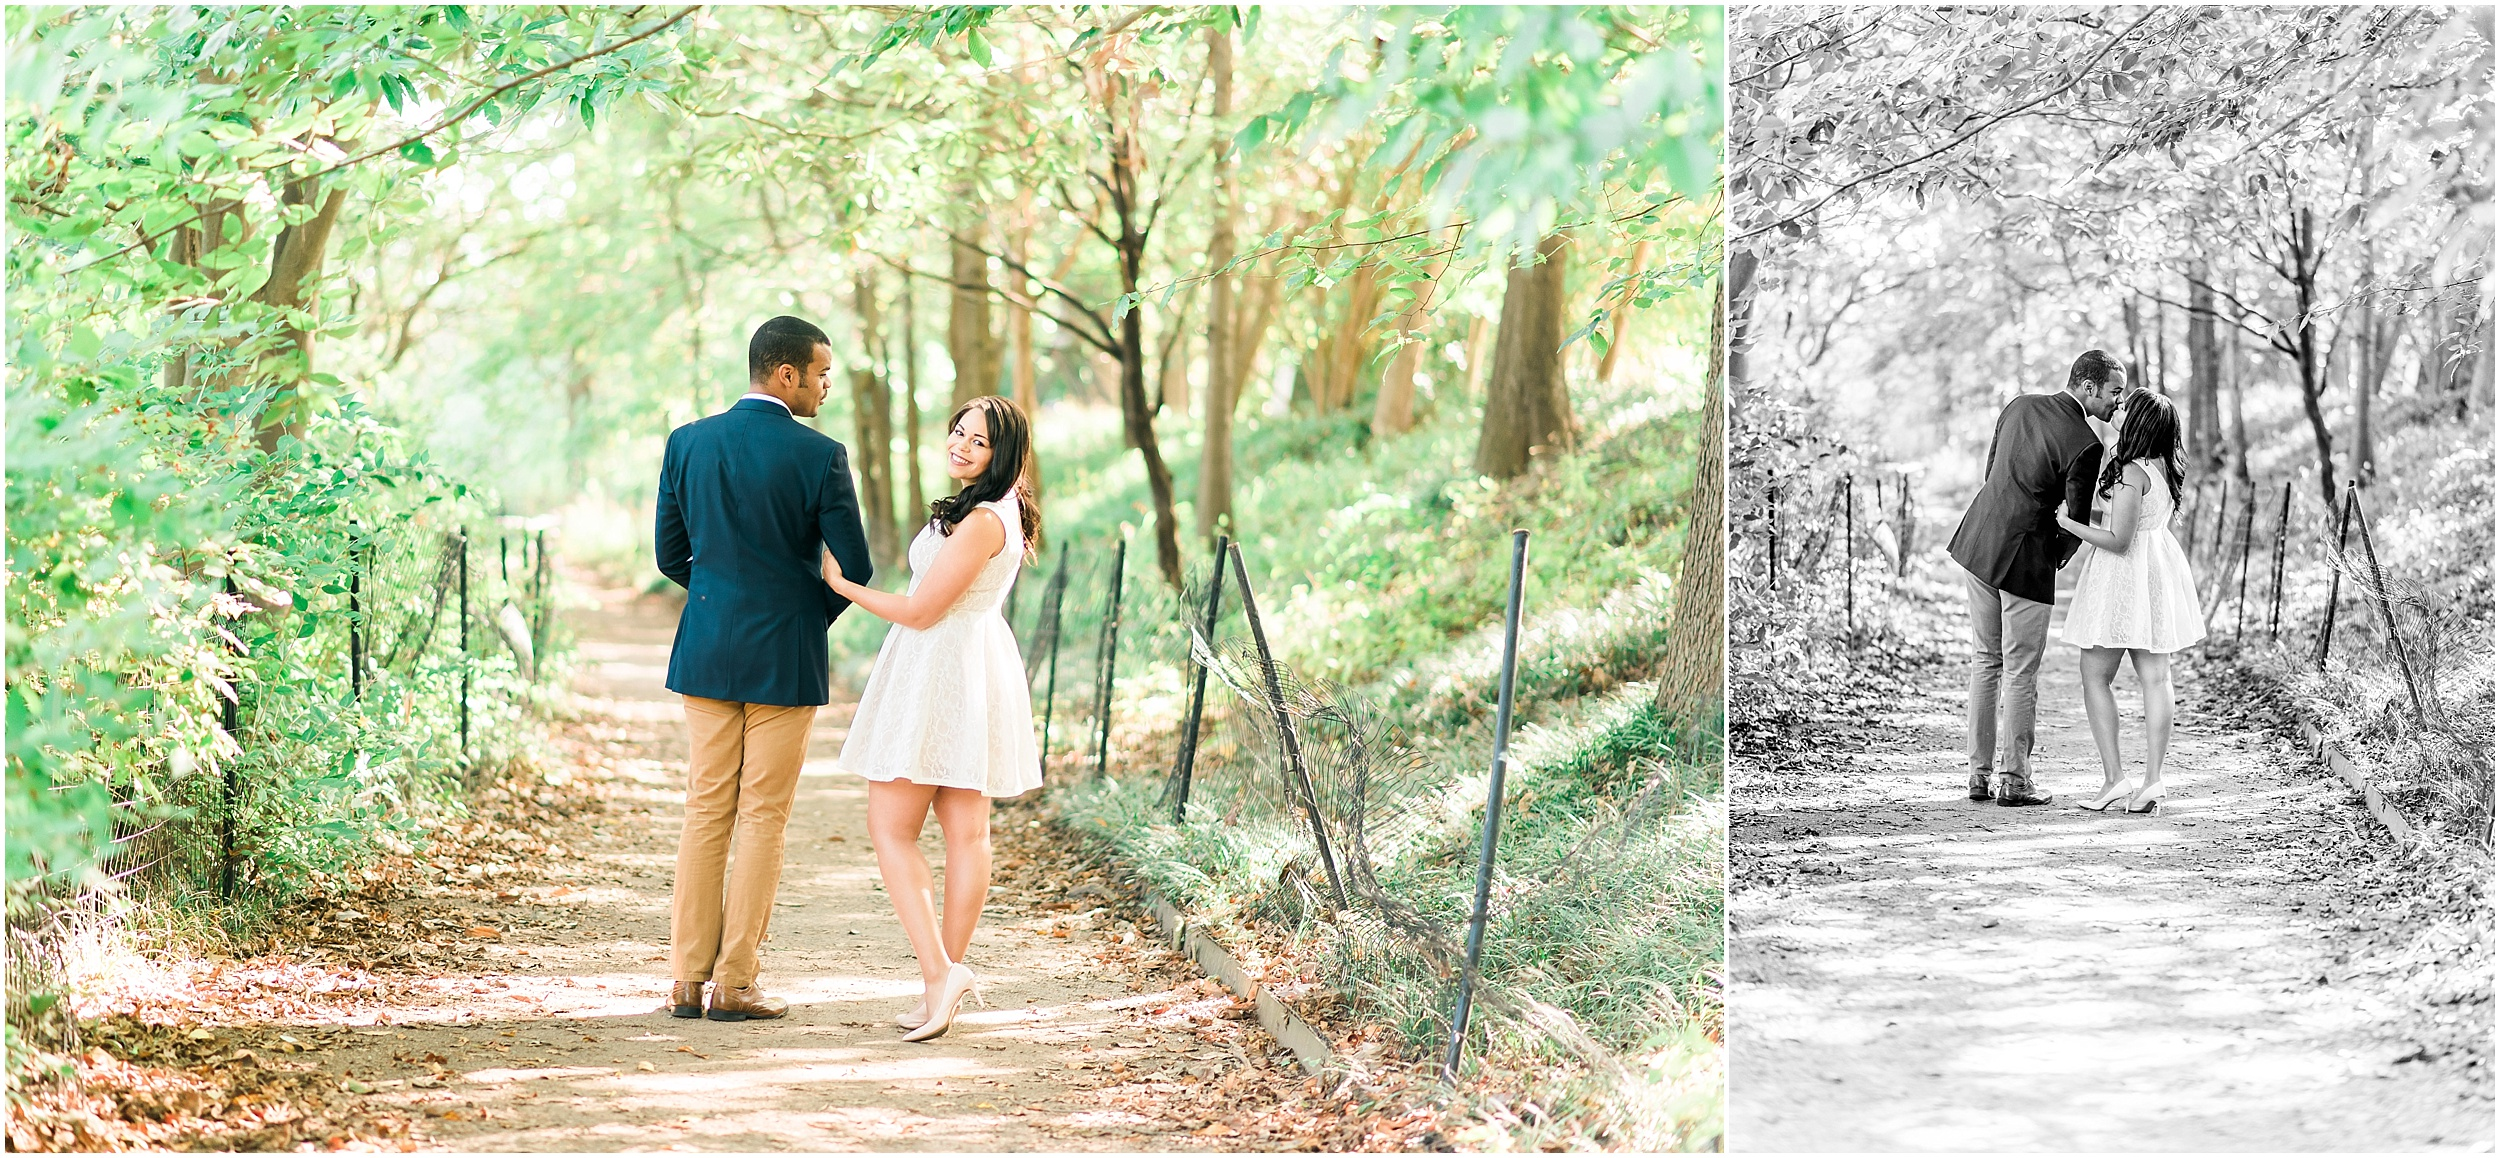 Tallahassee Florida Wedding, Matt and Lindsey Engagement Session at Piedmont Park, Atlanta Georgia_0013.jpg